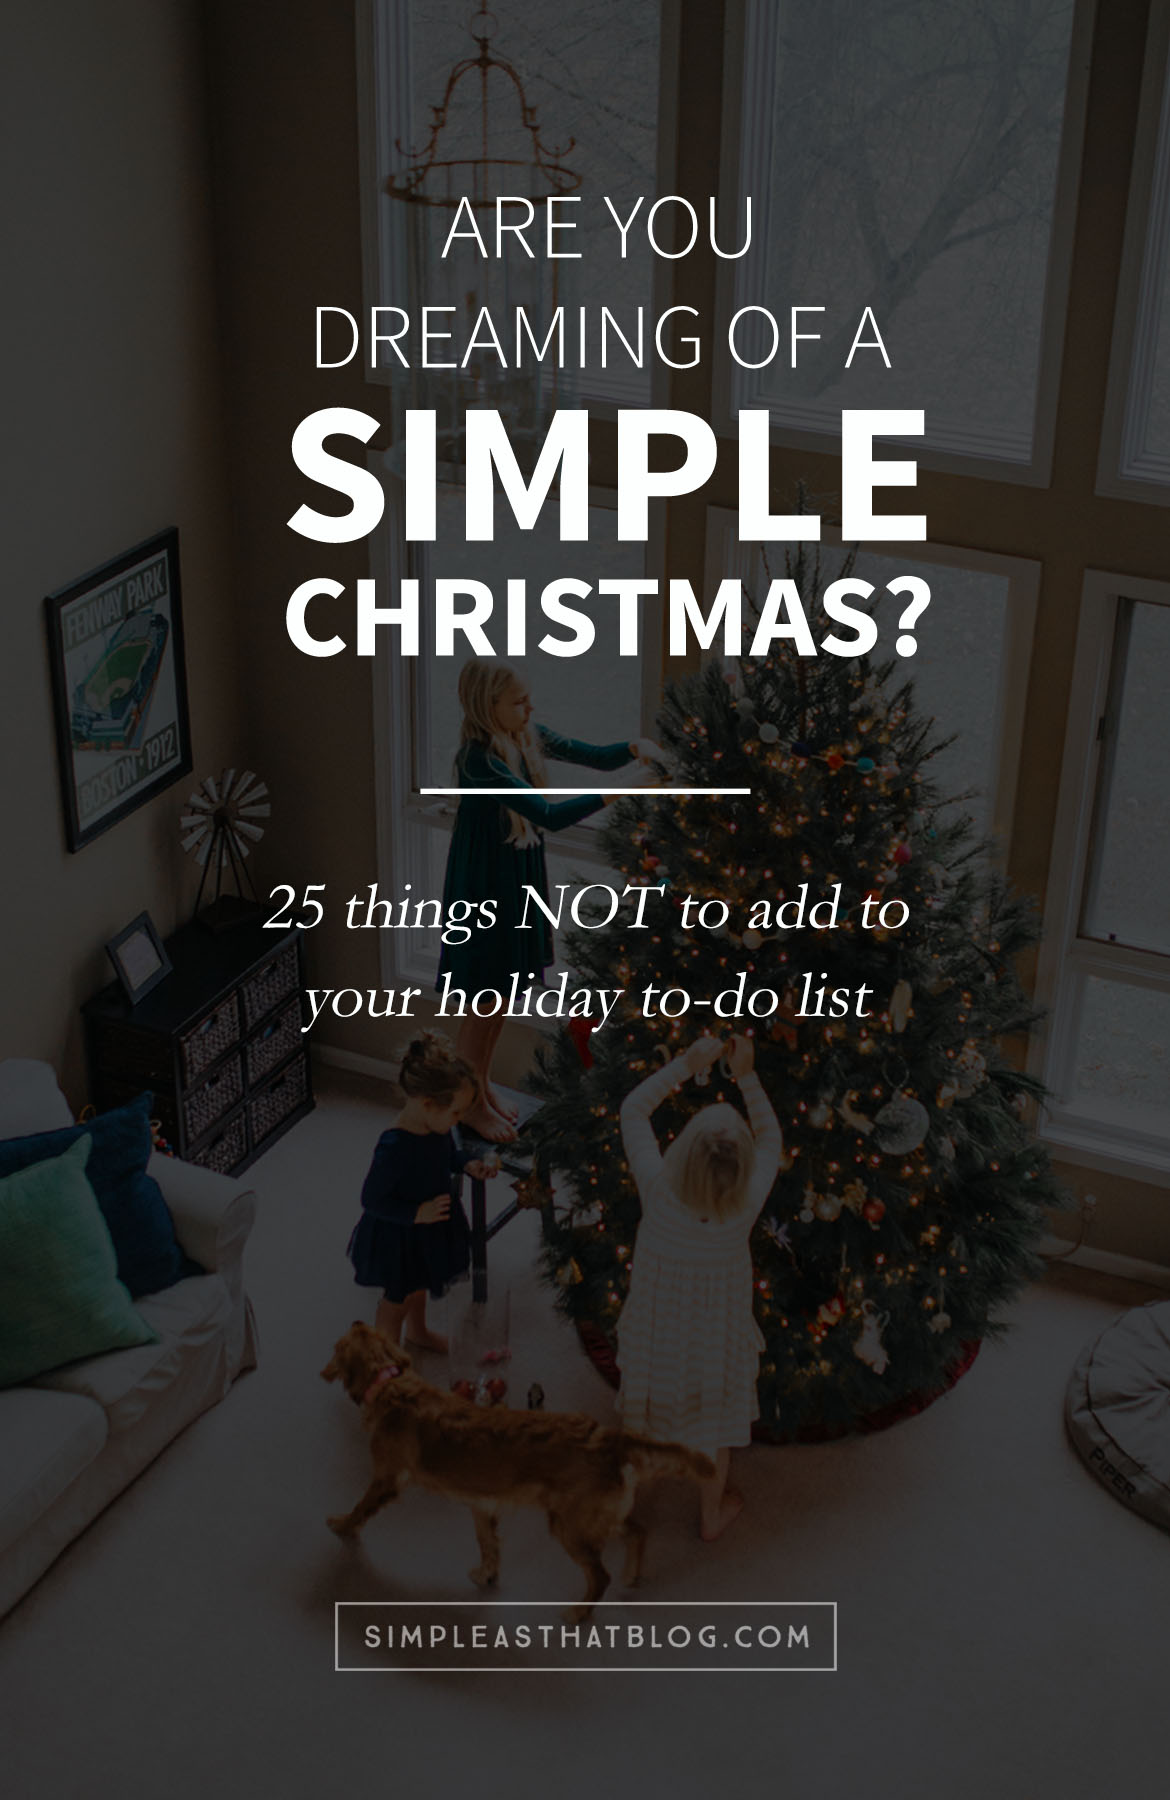 I'm dreaming of a simple Christmas this year. Here's what I'm crossing off my to-do list so I can make that dream come true.